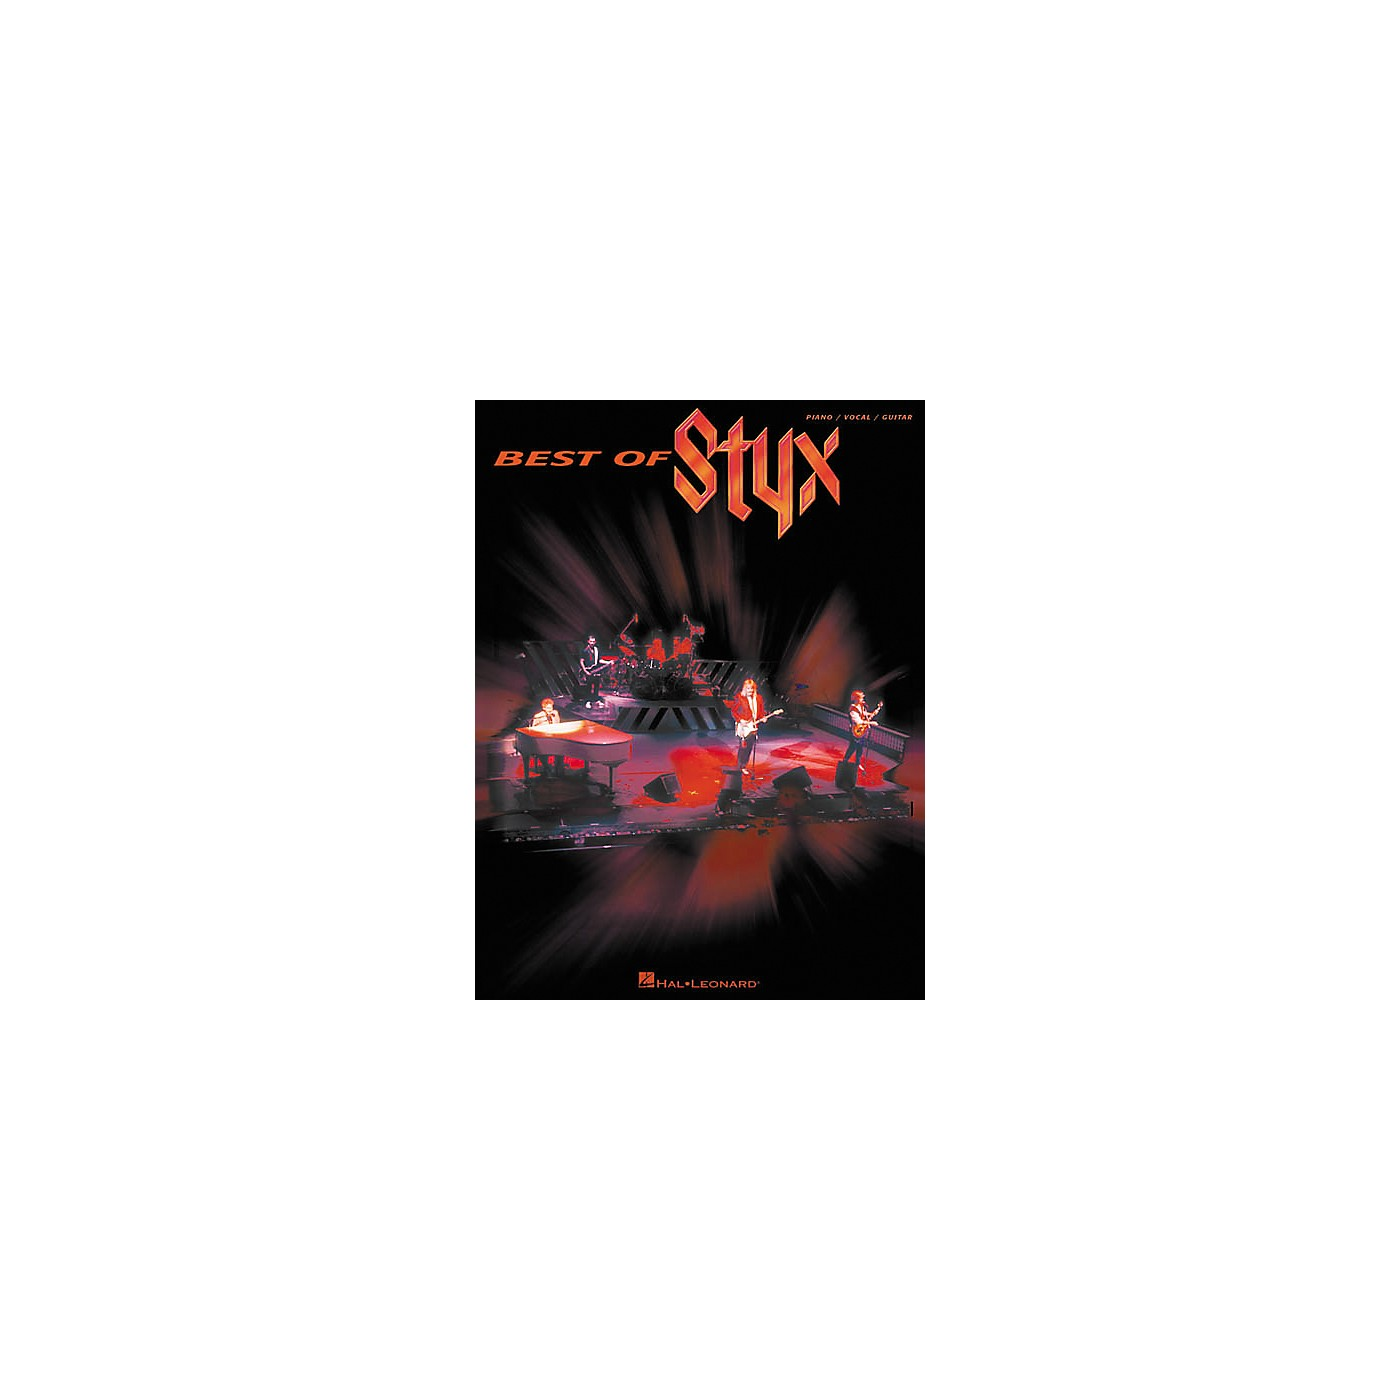 Hal Leonard Best of Styx Piano, Vocal, Guitar Songbook thumbnail